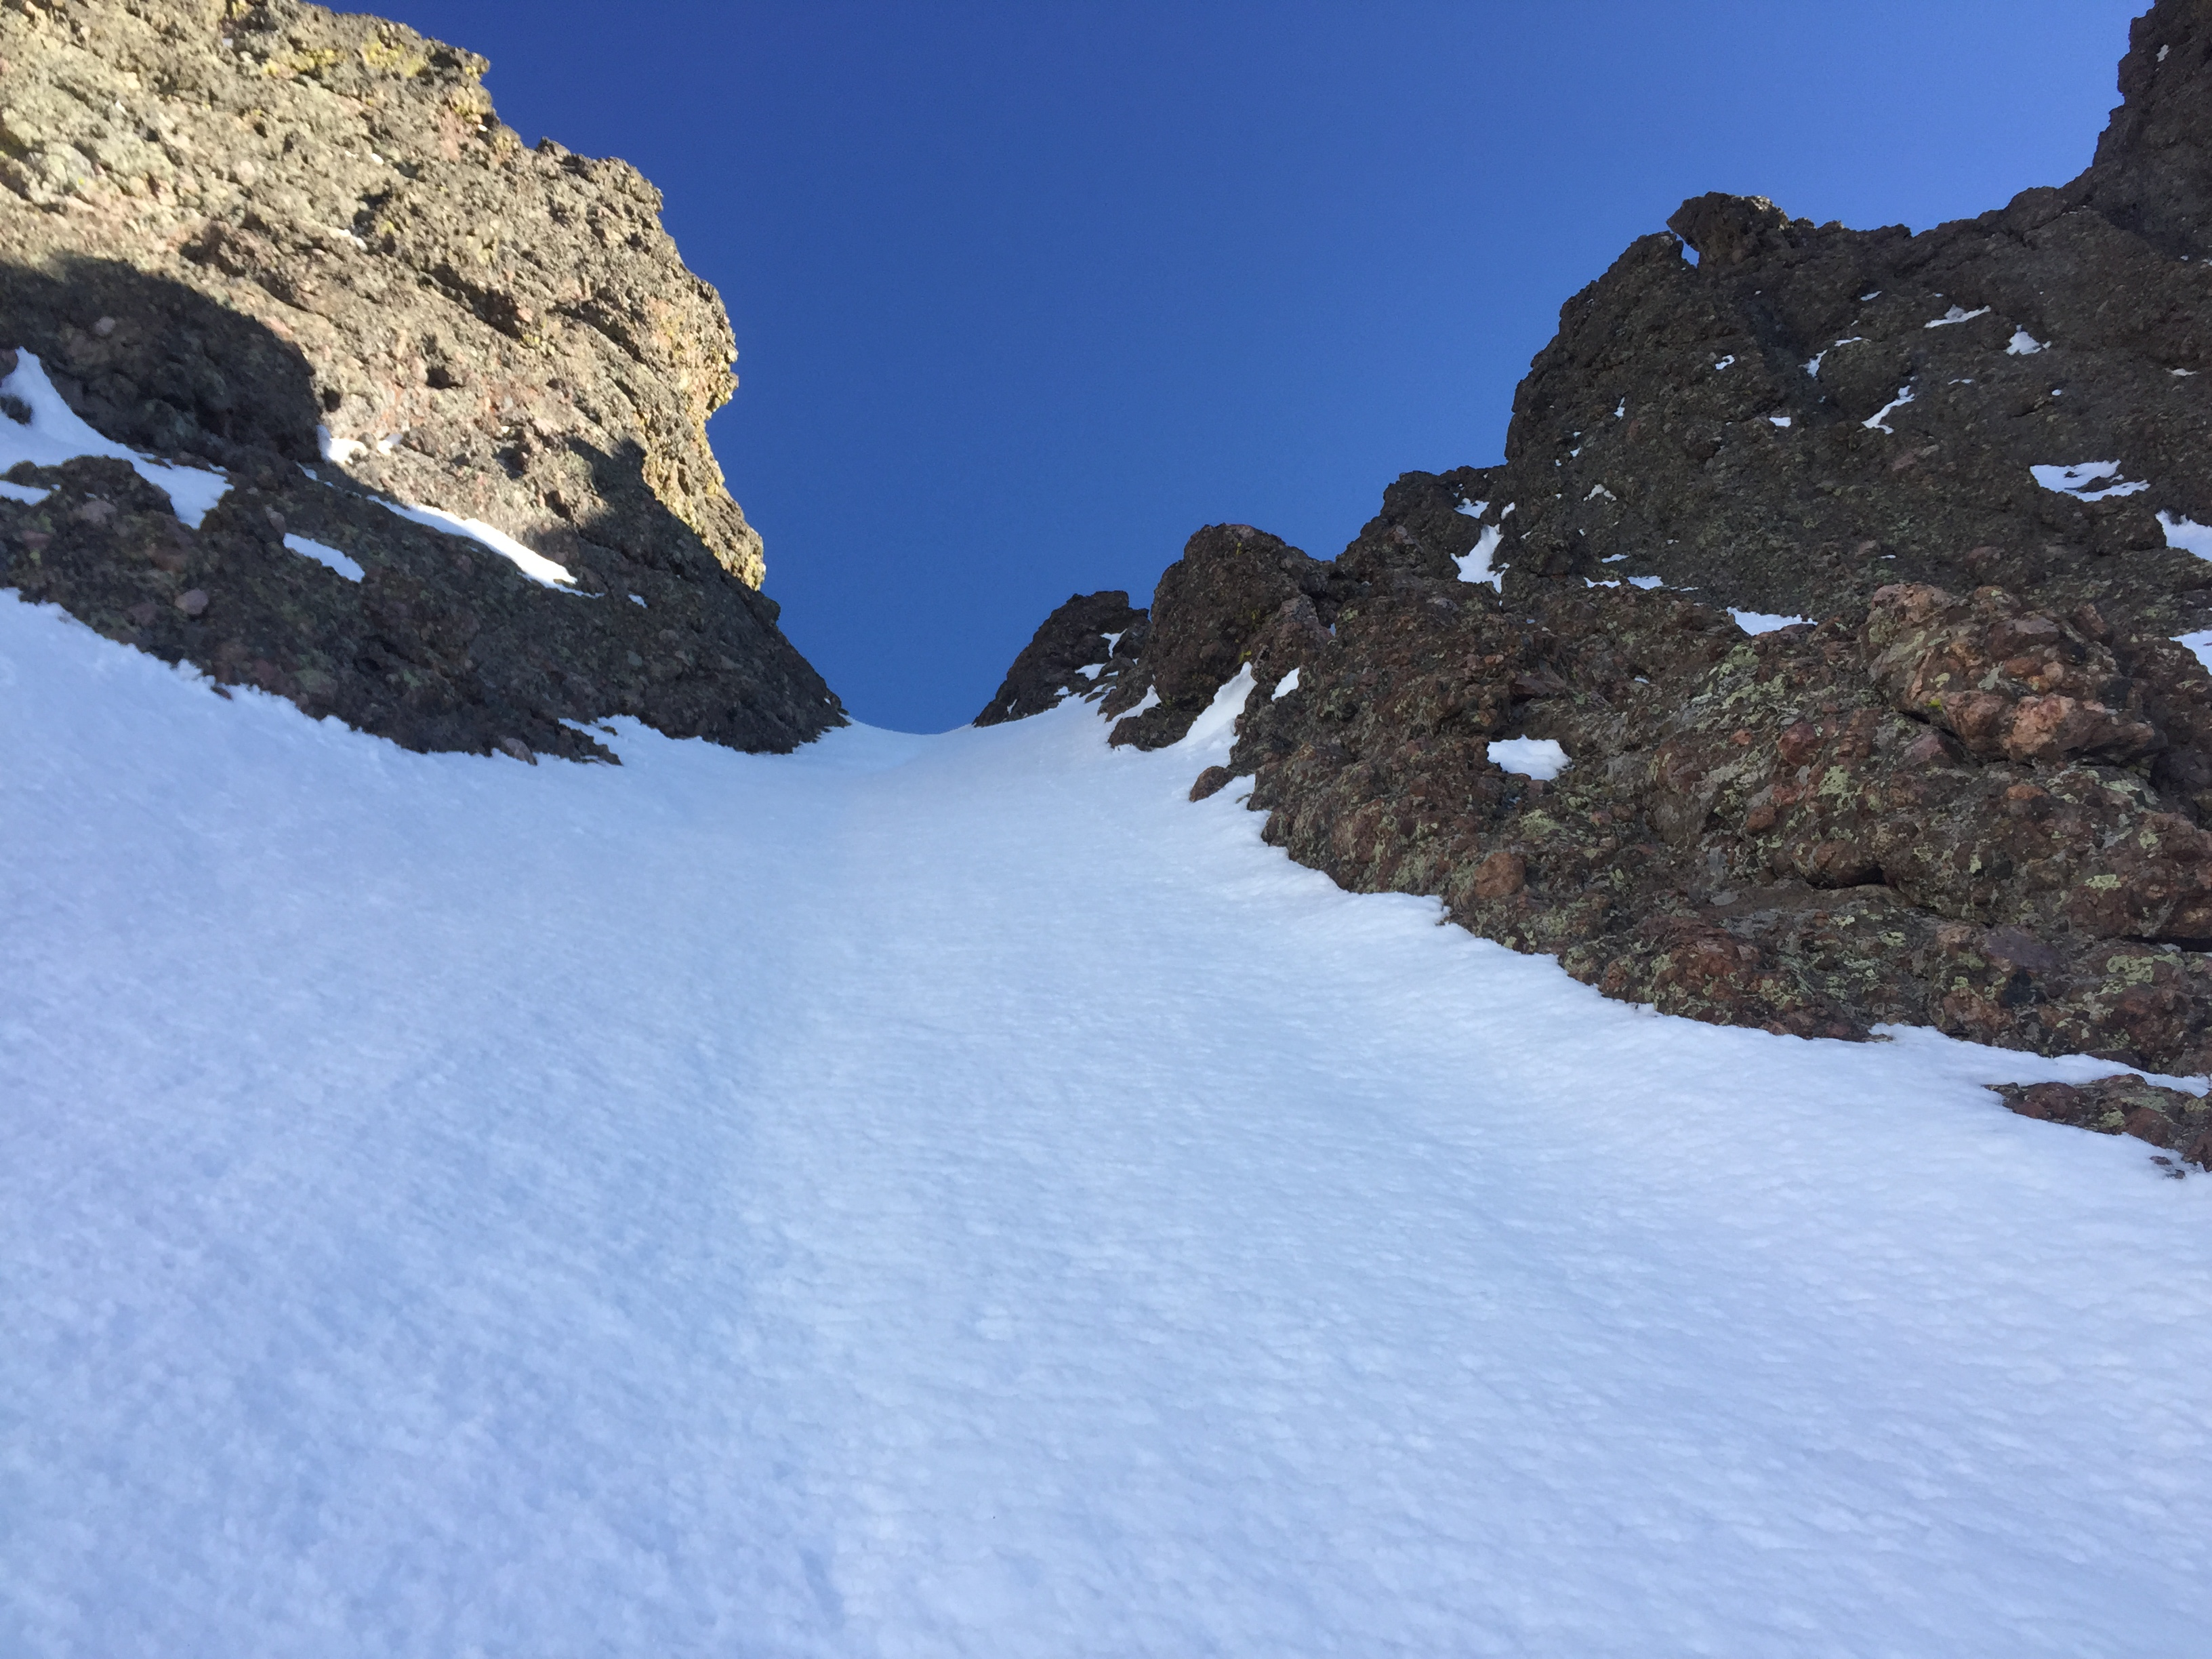 Perfect Conditions in the steepest and narrowest part of the south Couloir.